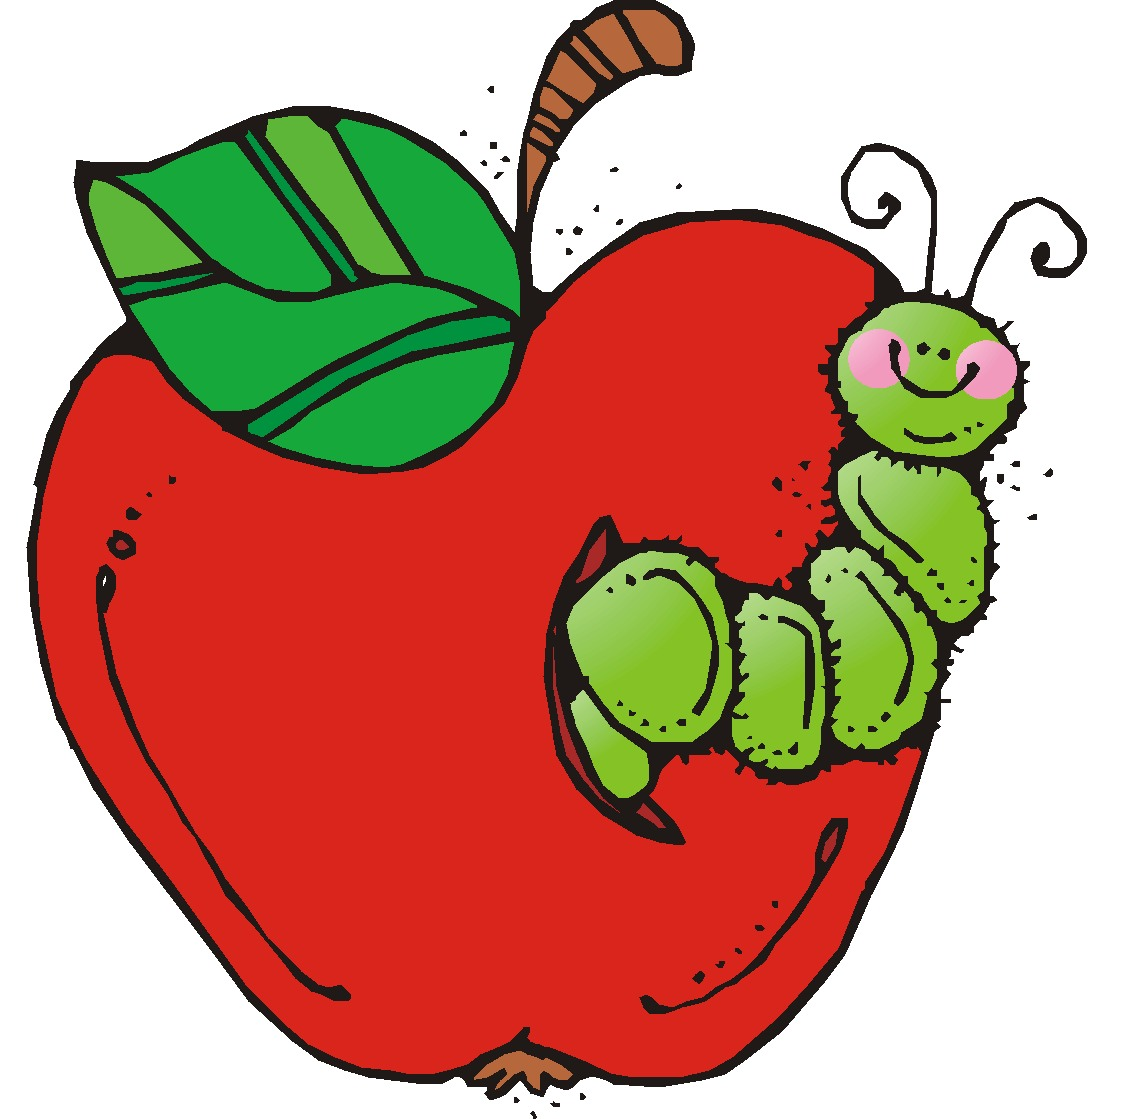 mac free clipart images - photo #10